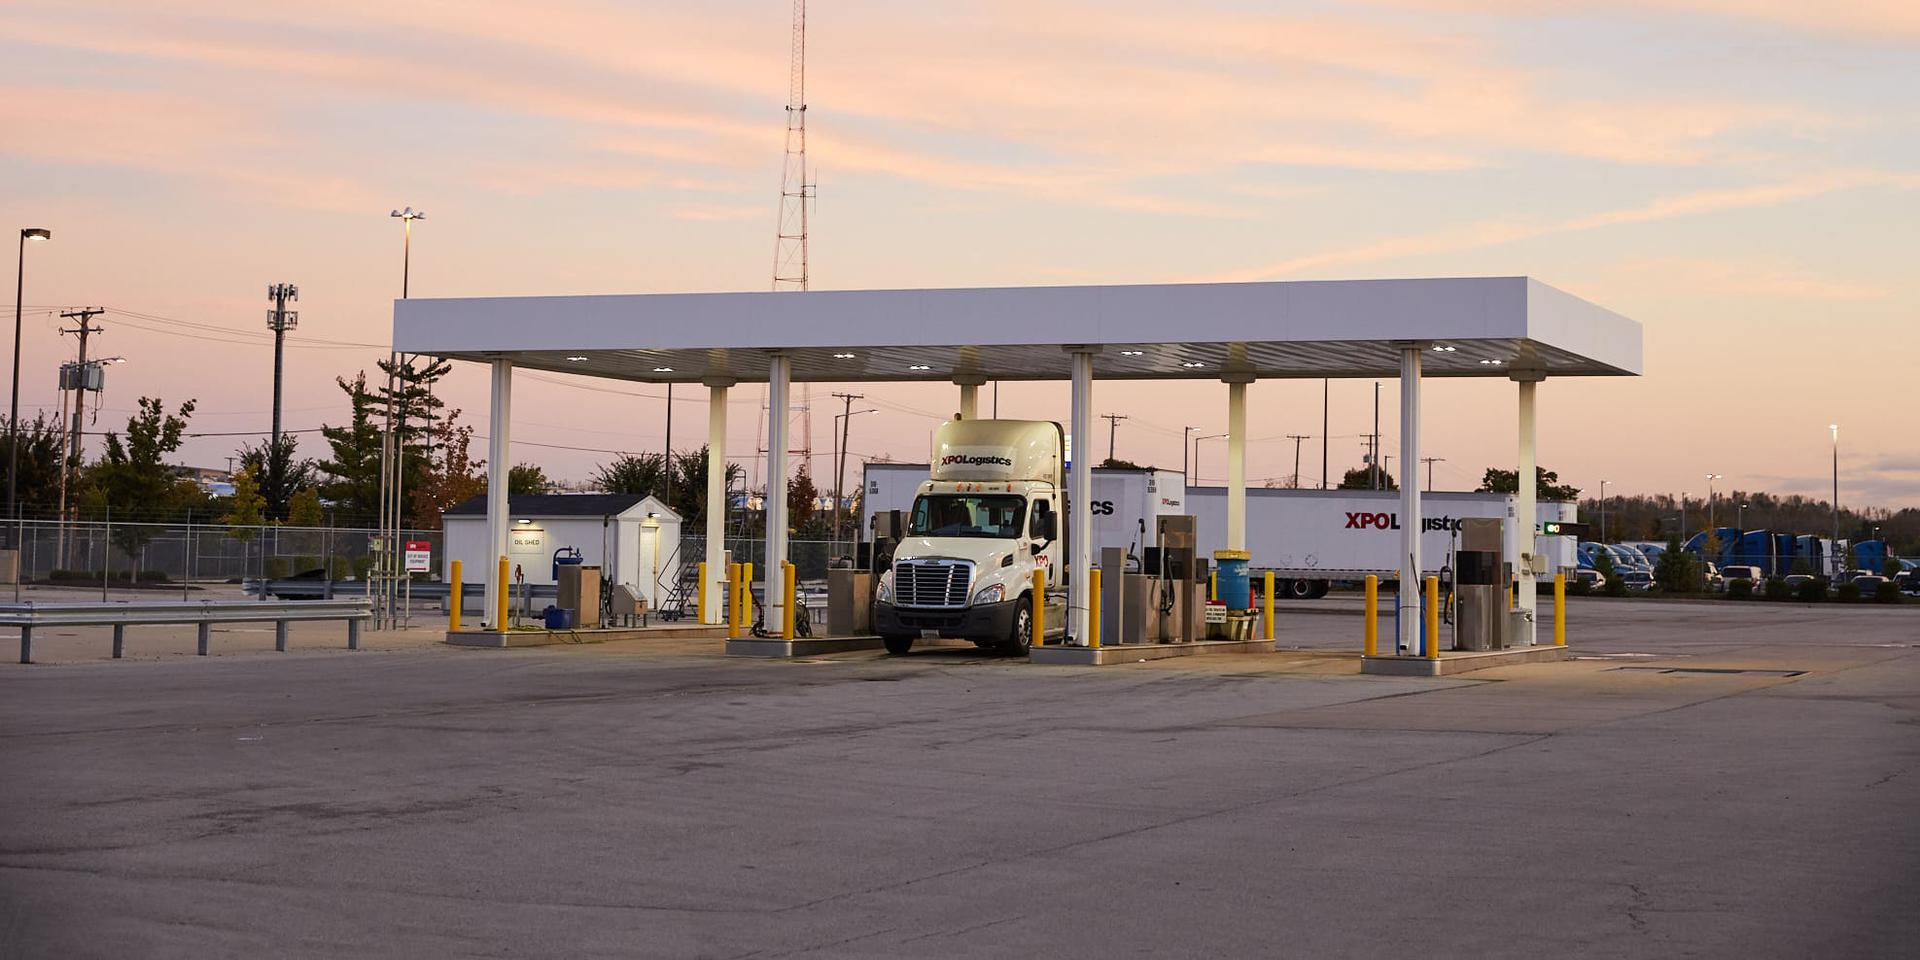 XPO LTL truck at fueling station